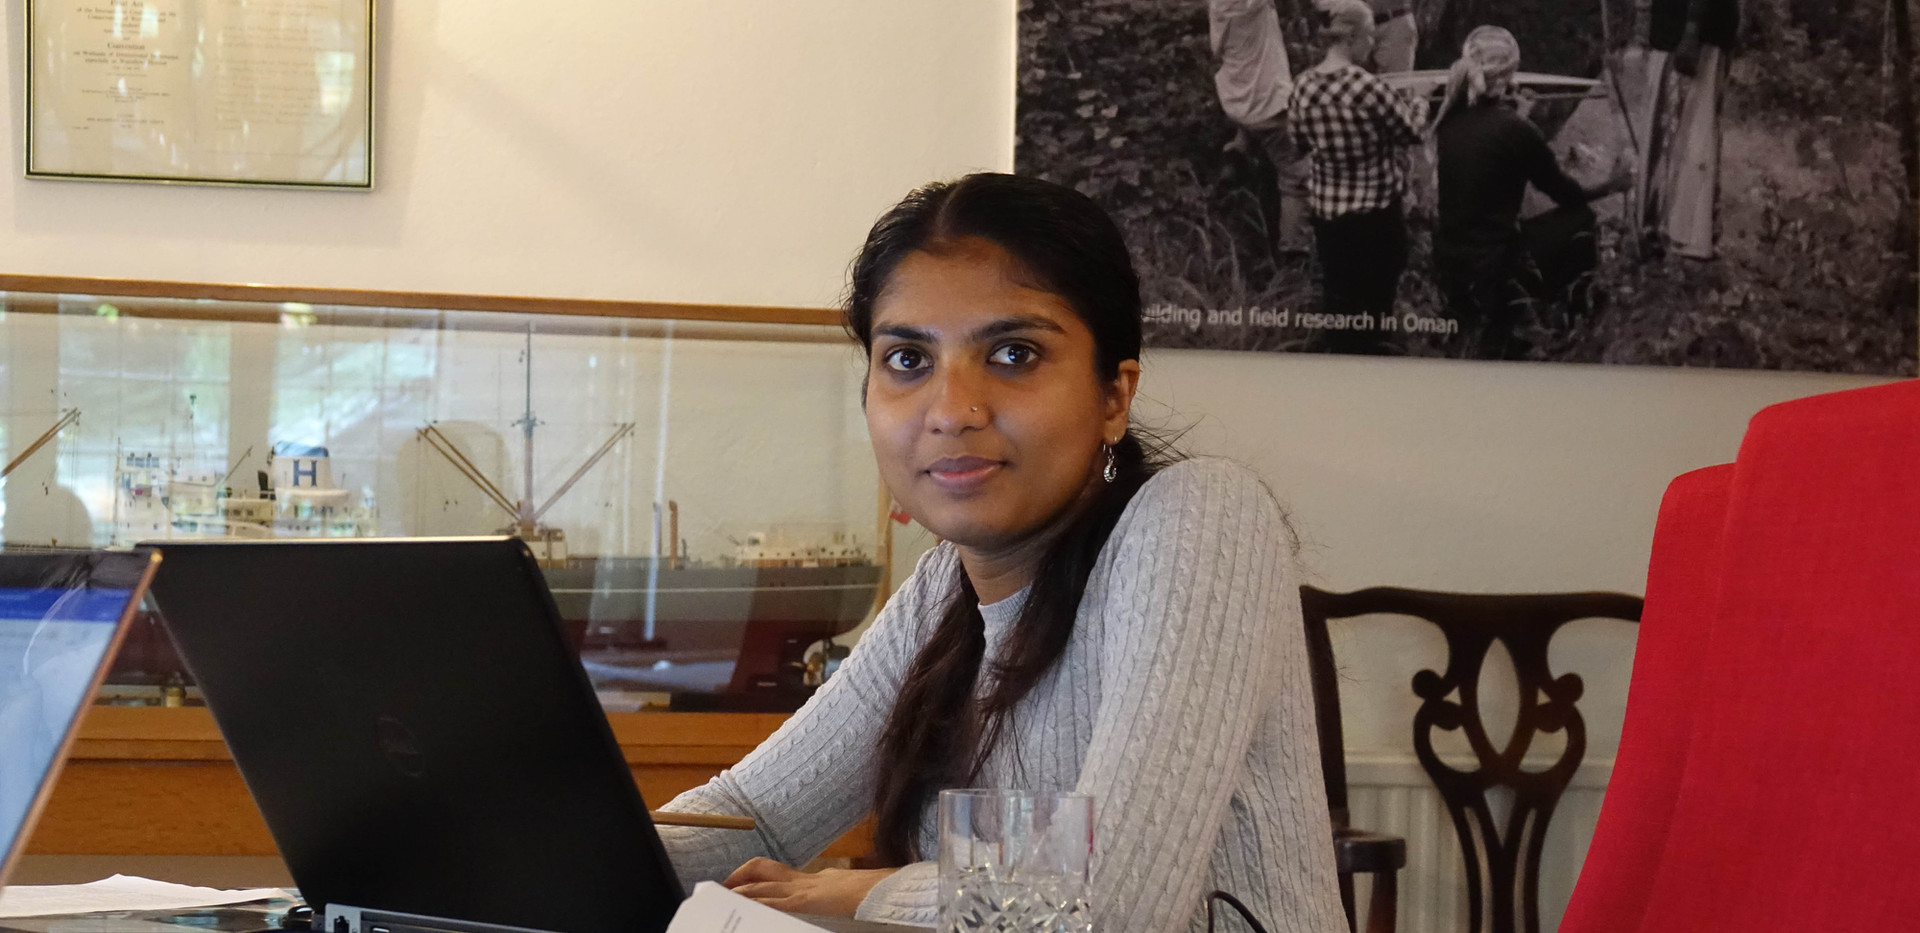 Dr Parvathy Venugopal working on her PhD at the Institute